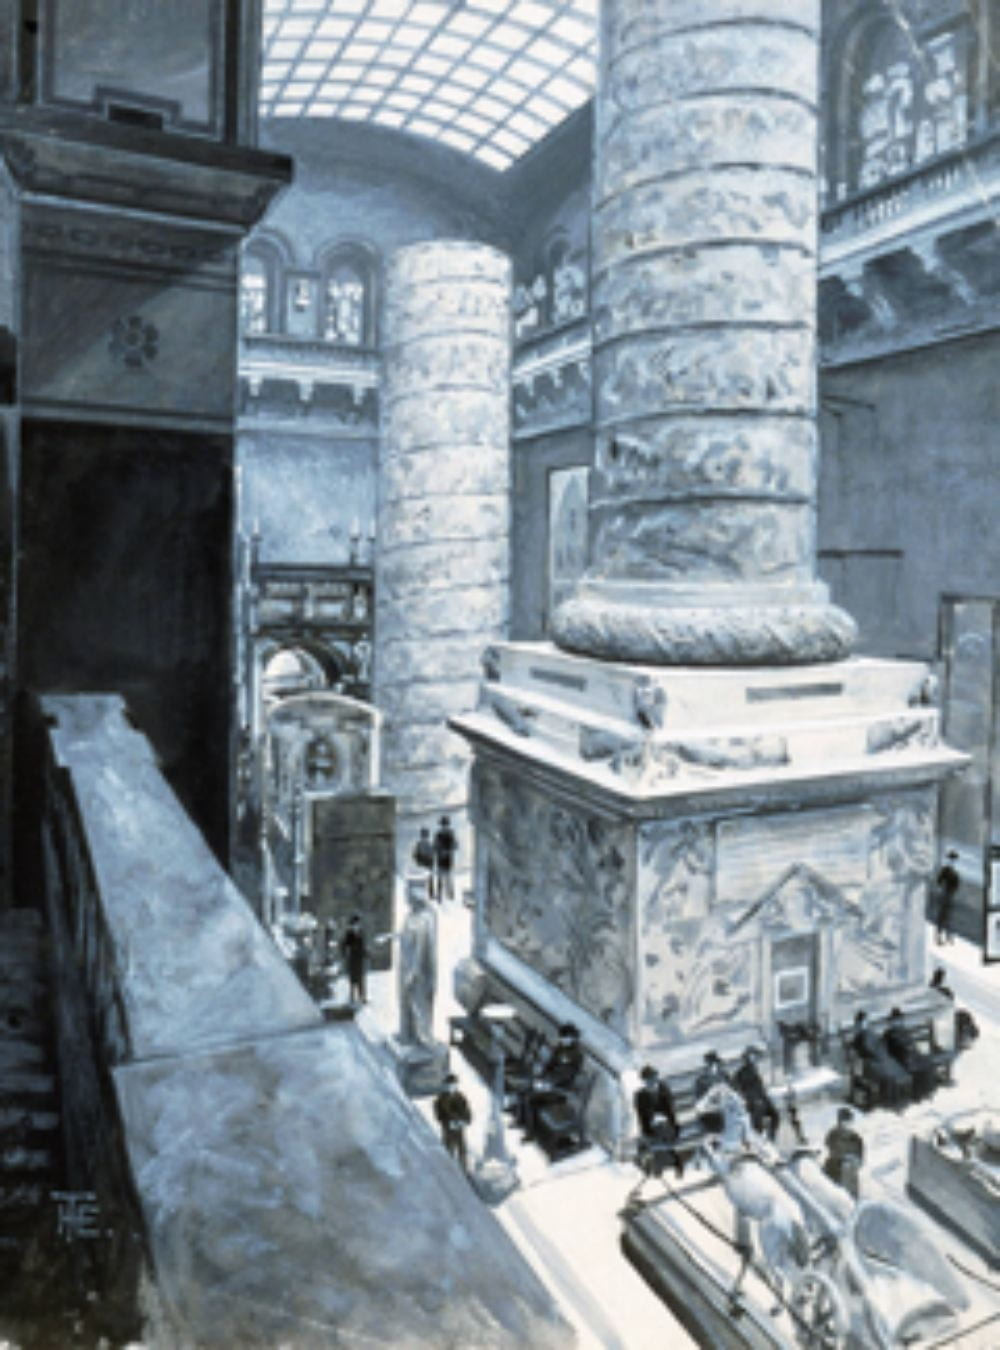 Alt Text: A black and white drawing looking down from a balcony into a museum gallery. Plaster casts of various classical and Renaissance sculpture clutter the floors surrounding a giant column in two pieces. People dressed in dark clothing sit on benches at the base of the column, some of them sketching.